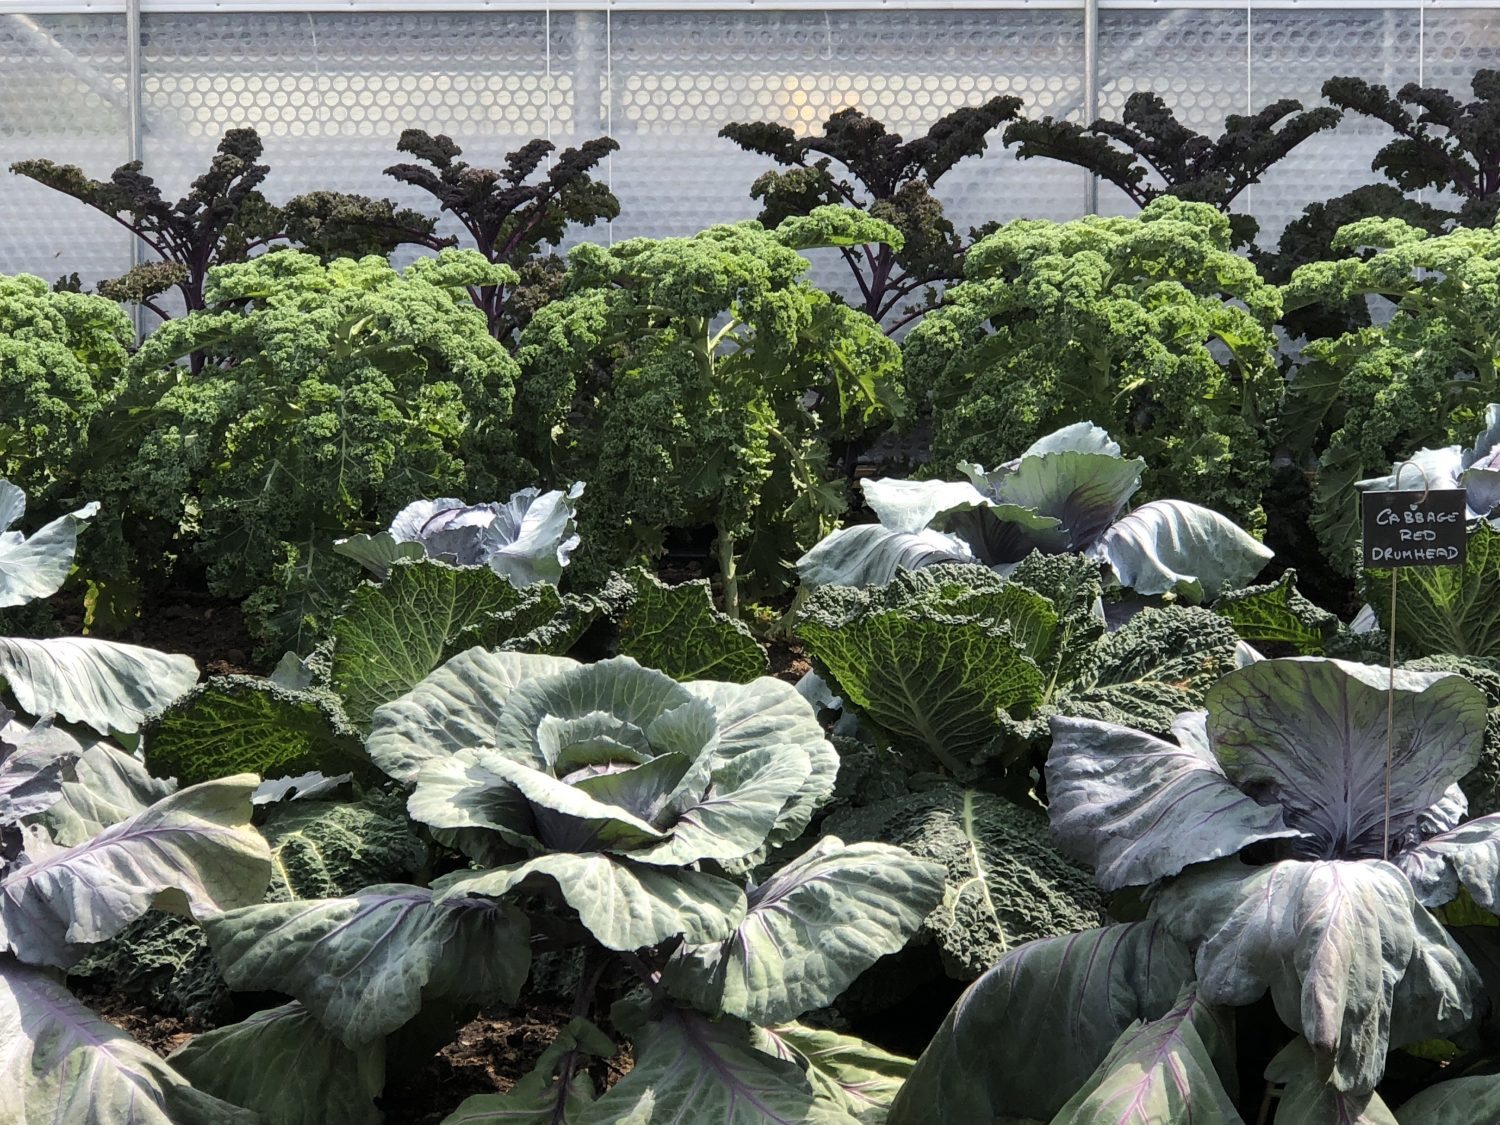 Kale and cabbages growing side by side. Grow leafy plants in semi-shade, or keep them well watered, as they may bolt.